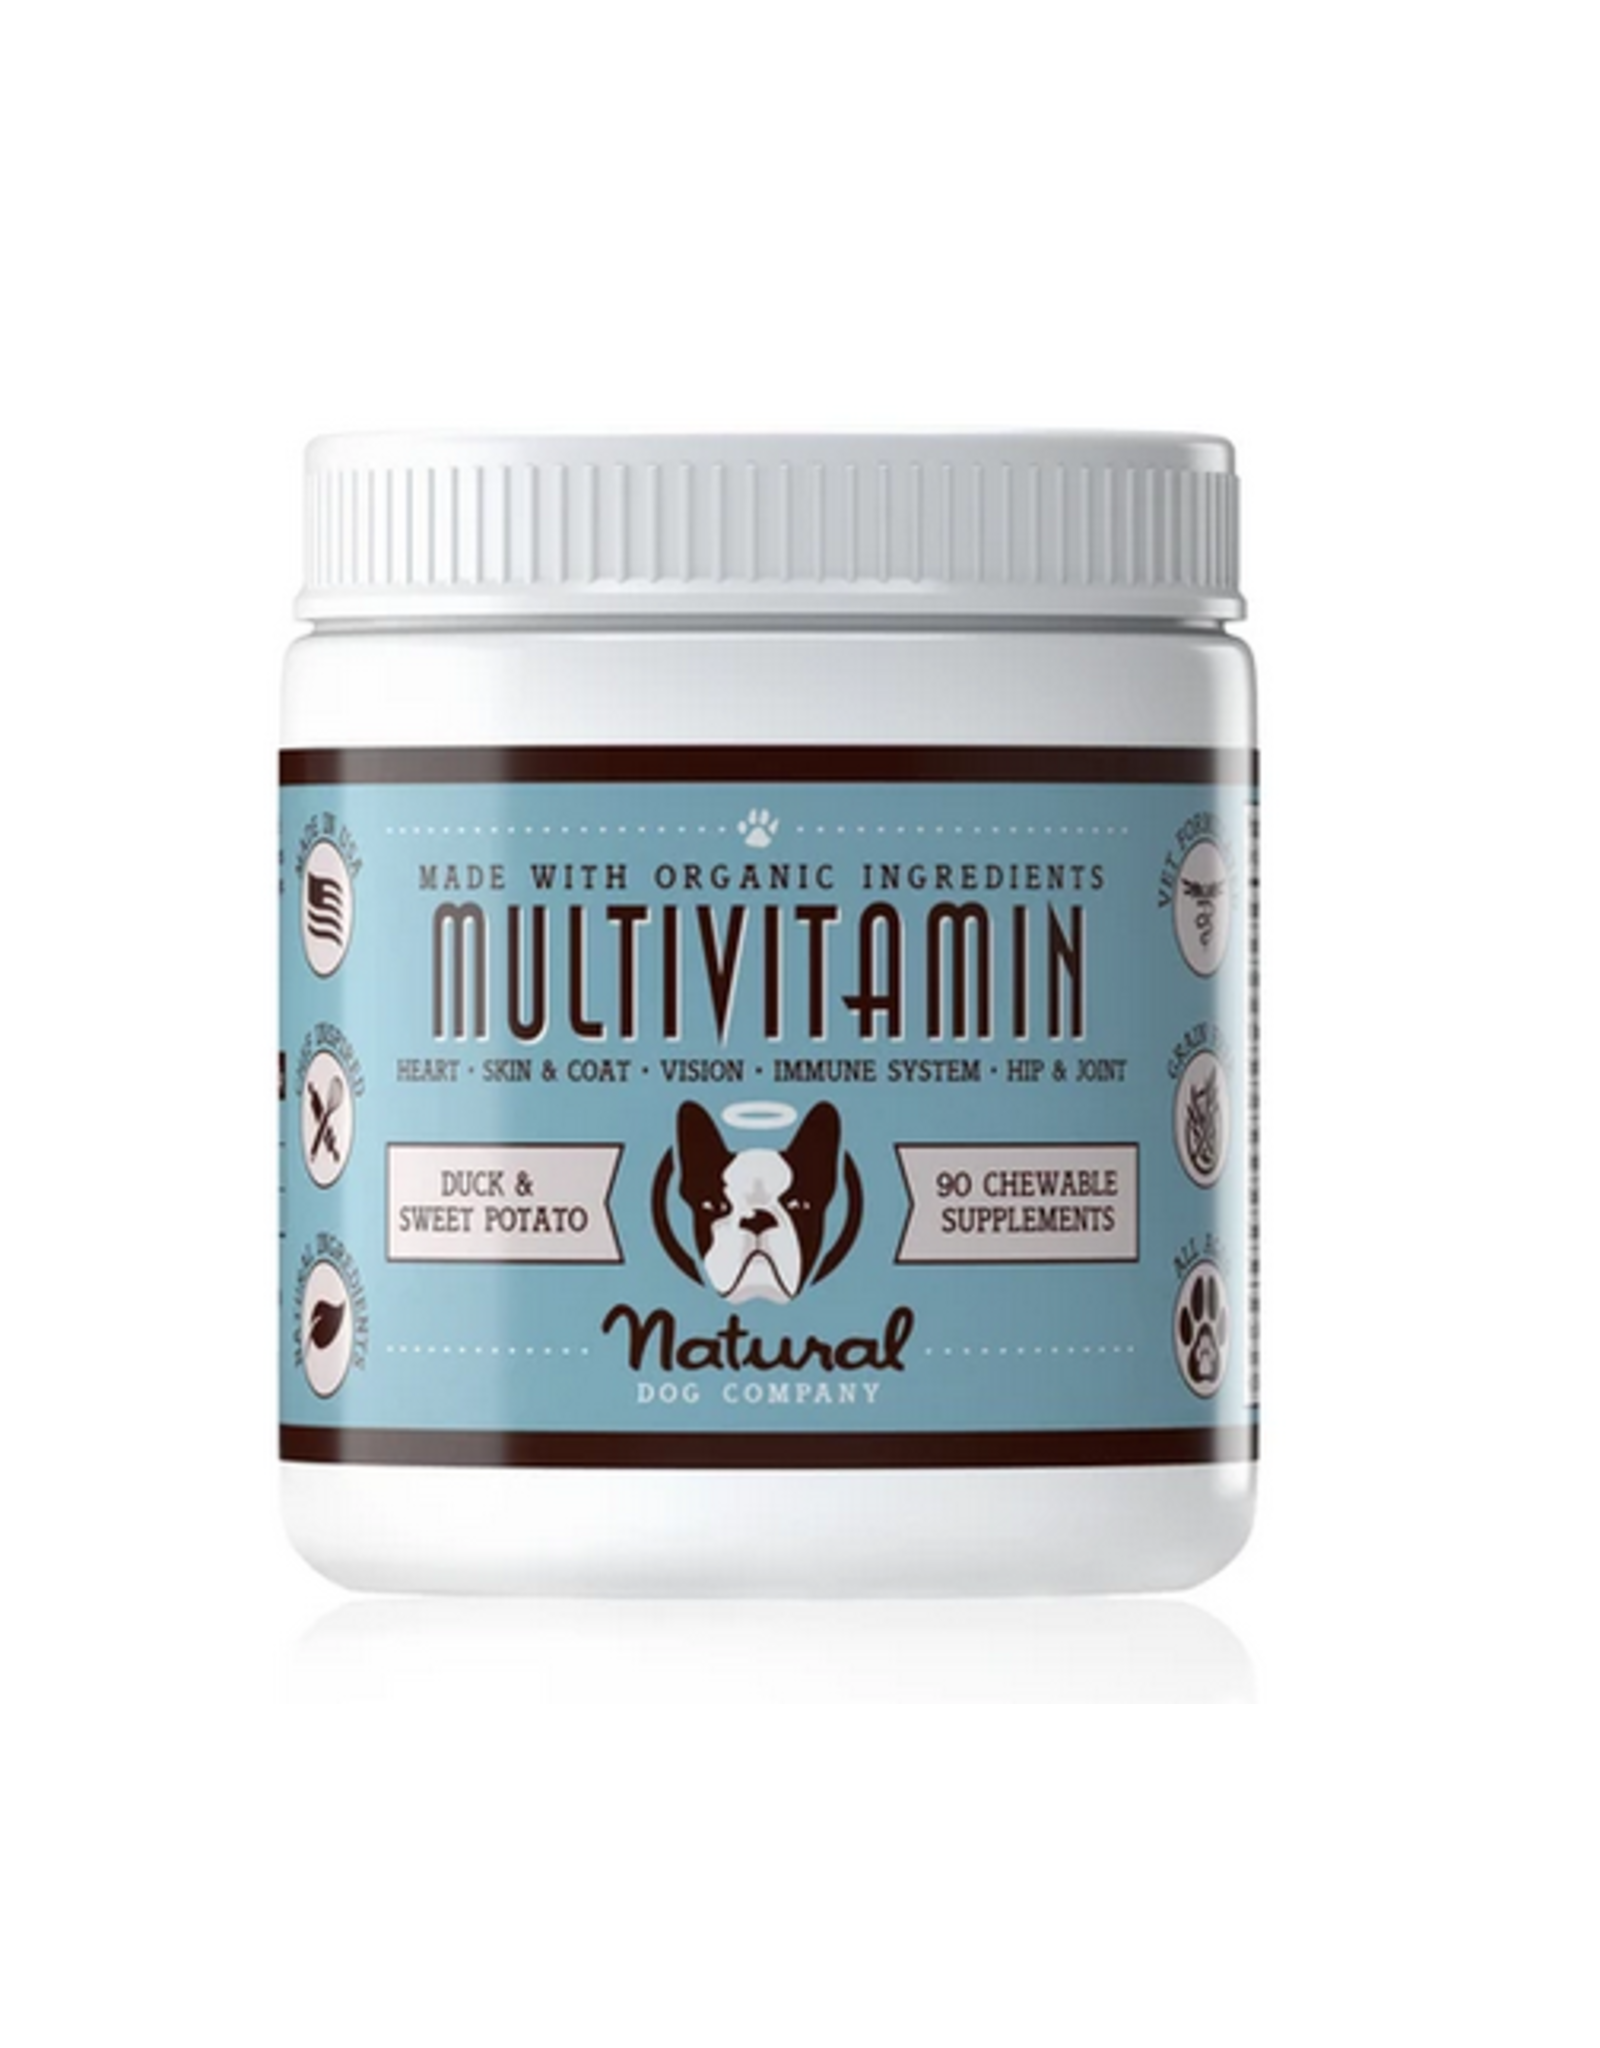 Natural Dog Company Natural Dog Company - Multivitamin Supplement